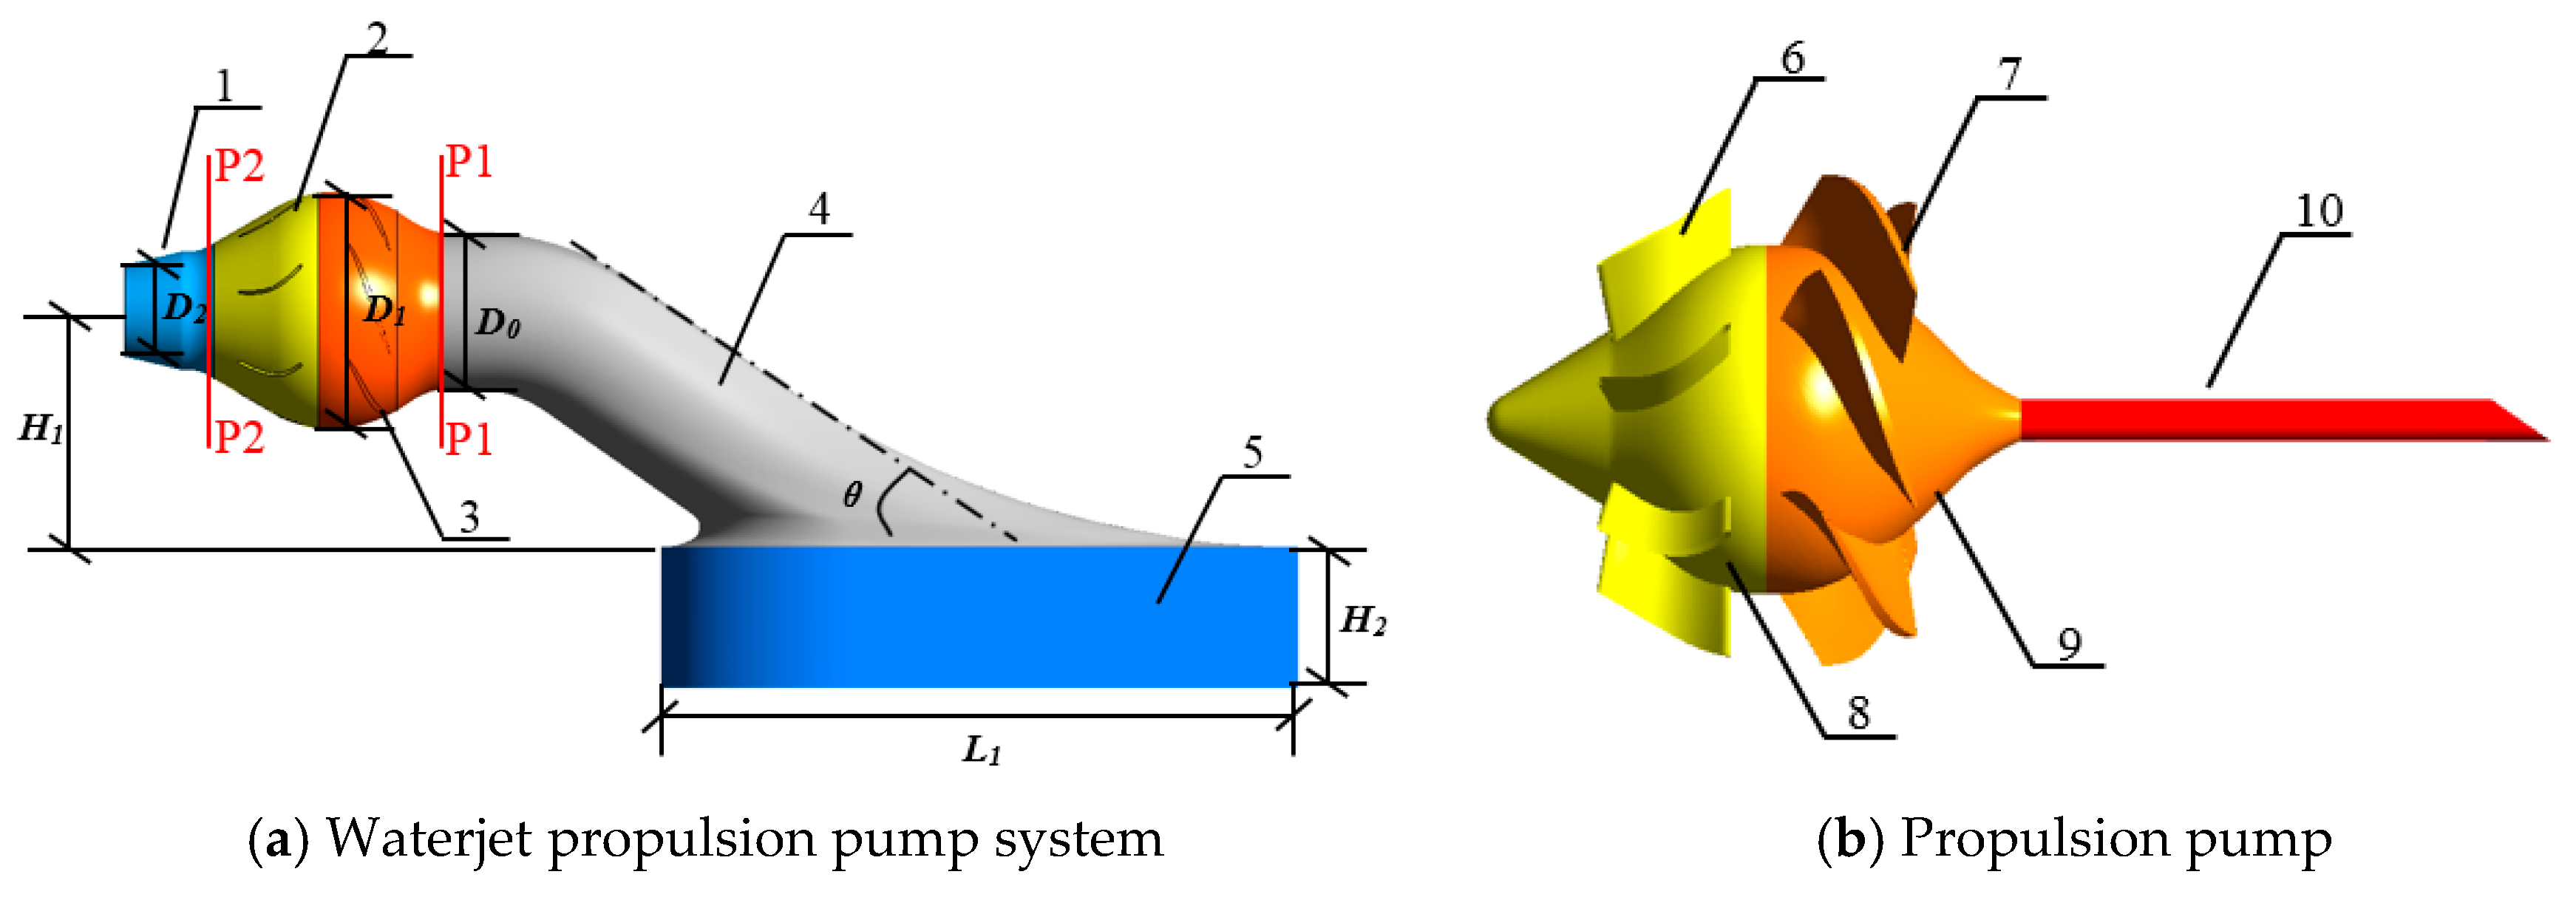 Processes Free Full Text Numerical Analysis Of Two Phase Flow In The Cavitation Process Of A Waterjet Propulsion Pump System